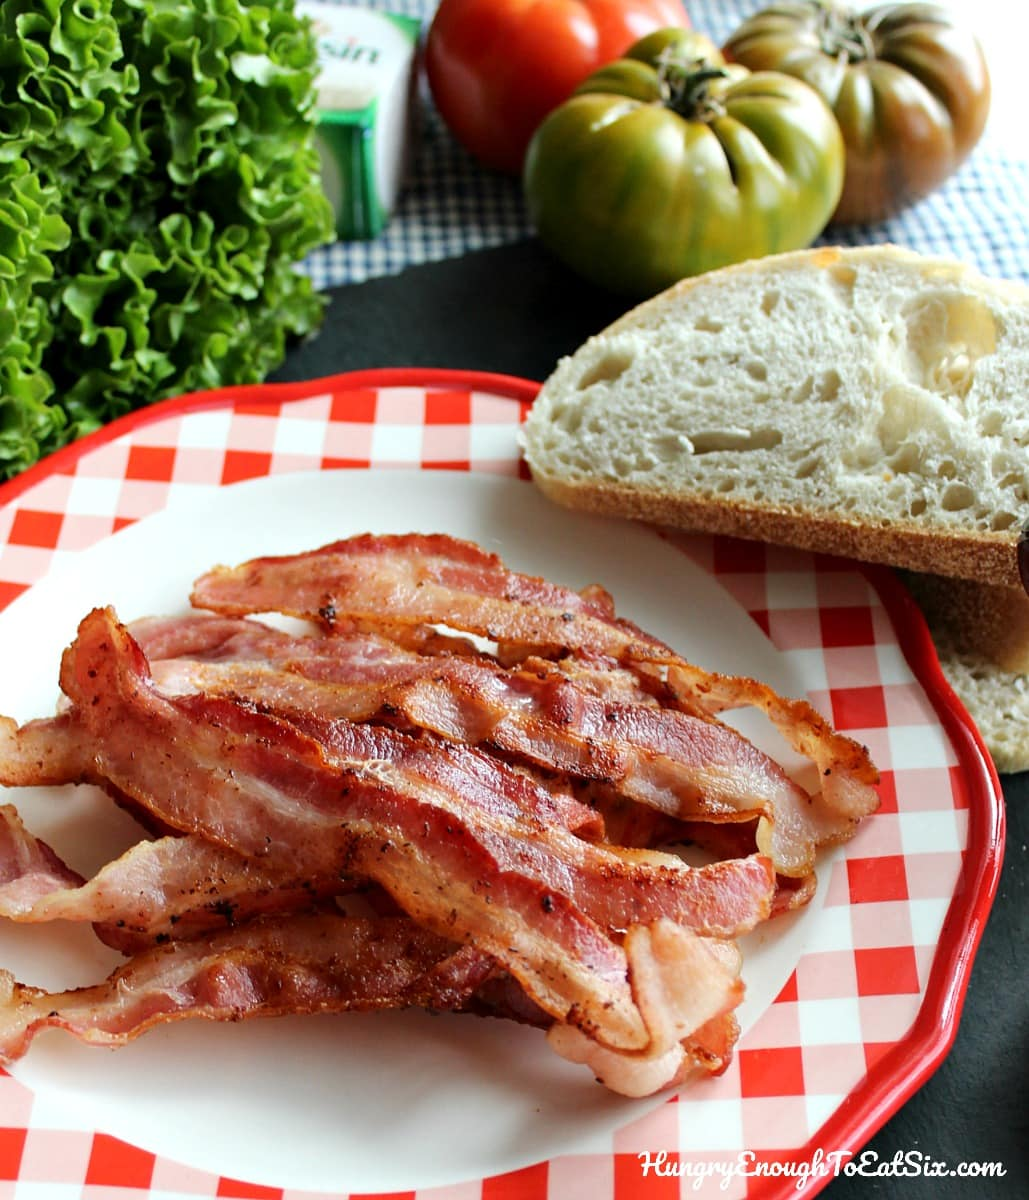 White and red plate with cooked bacon and a slice of bread